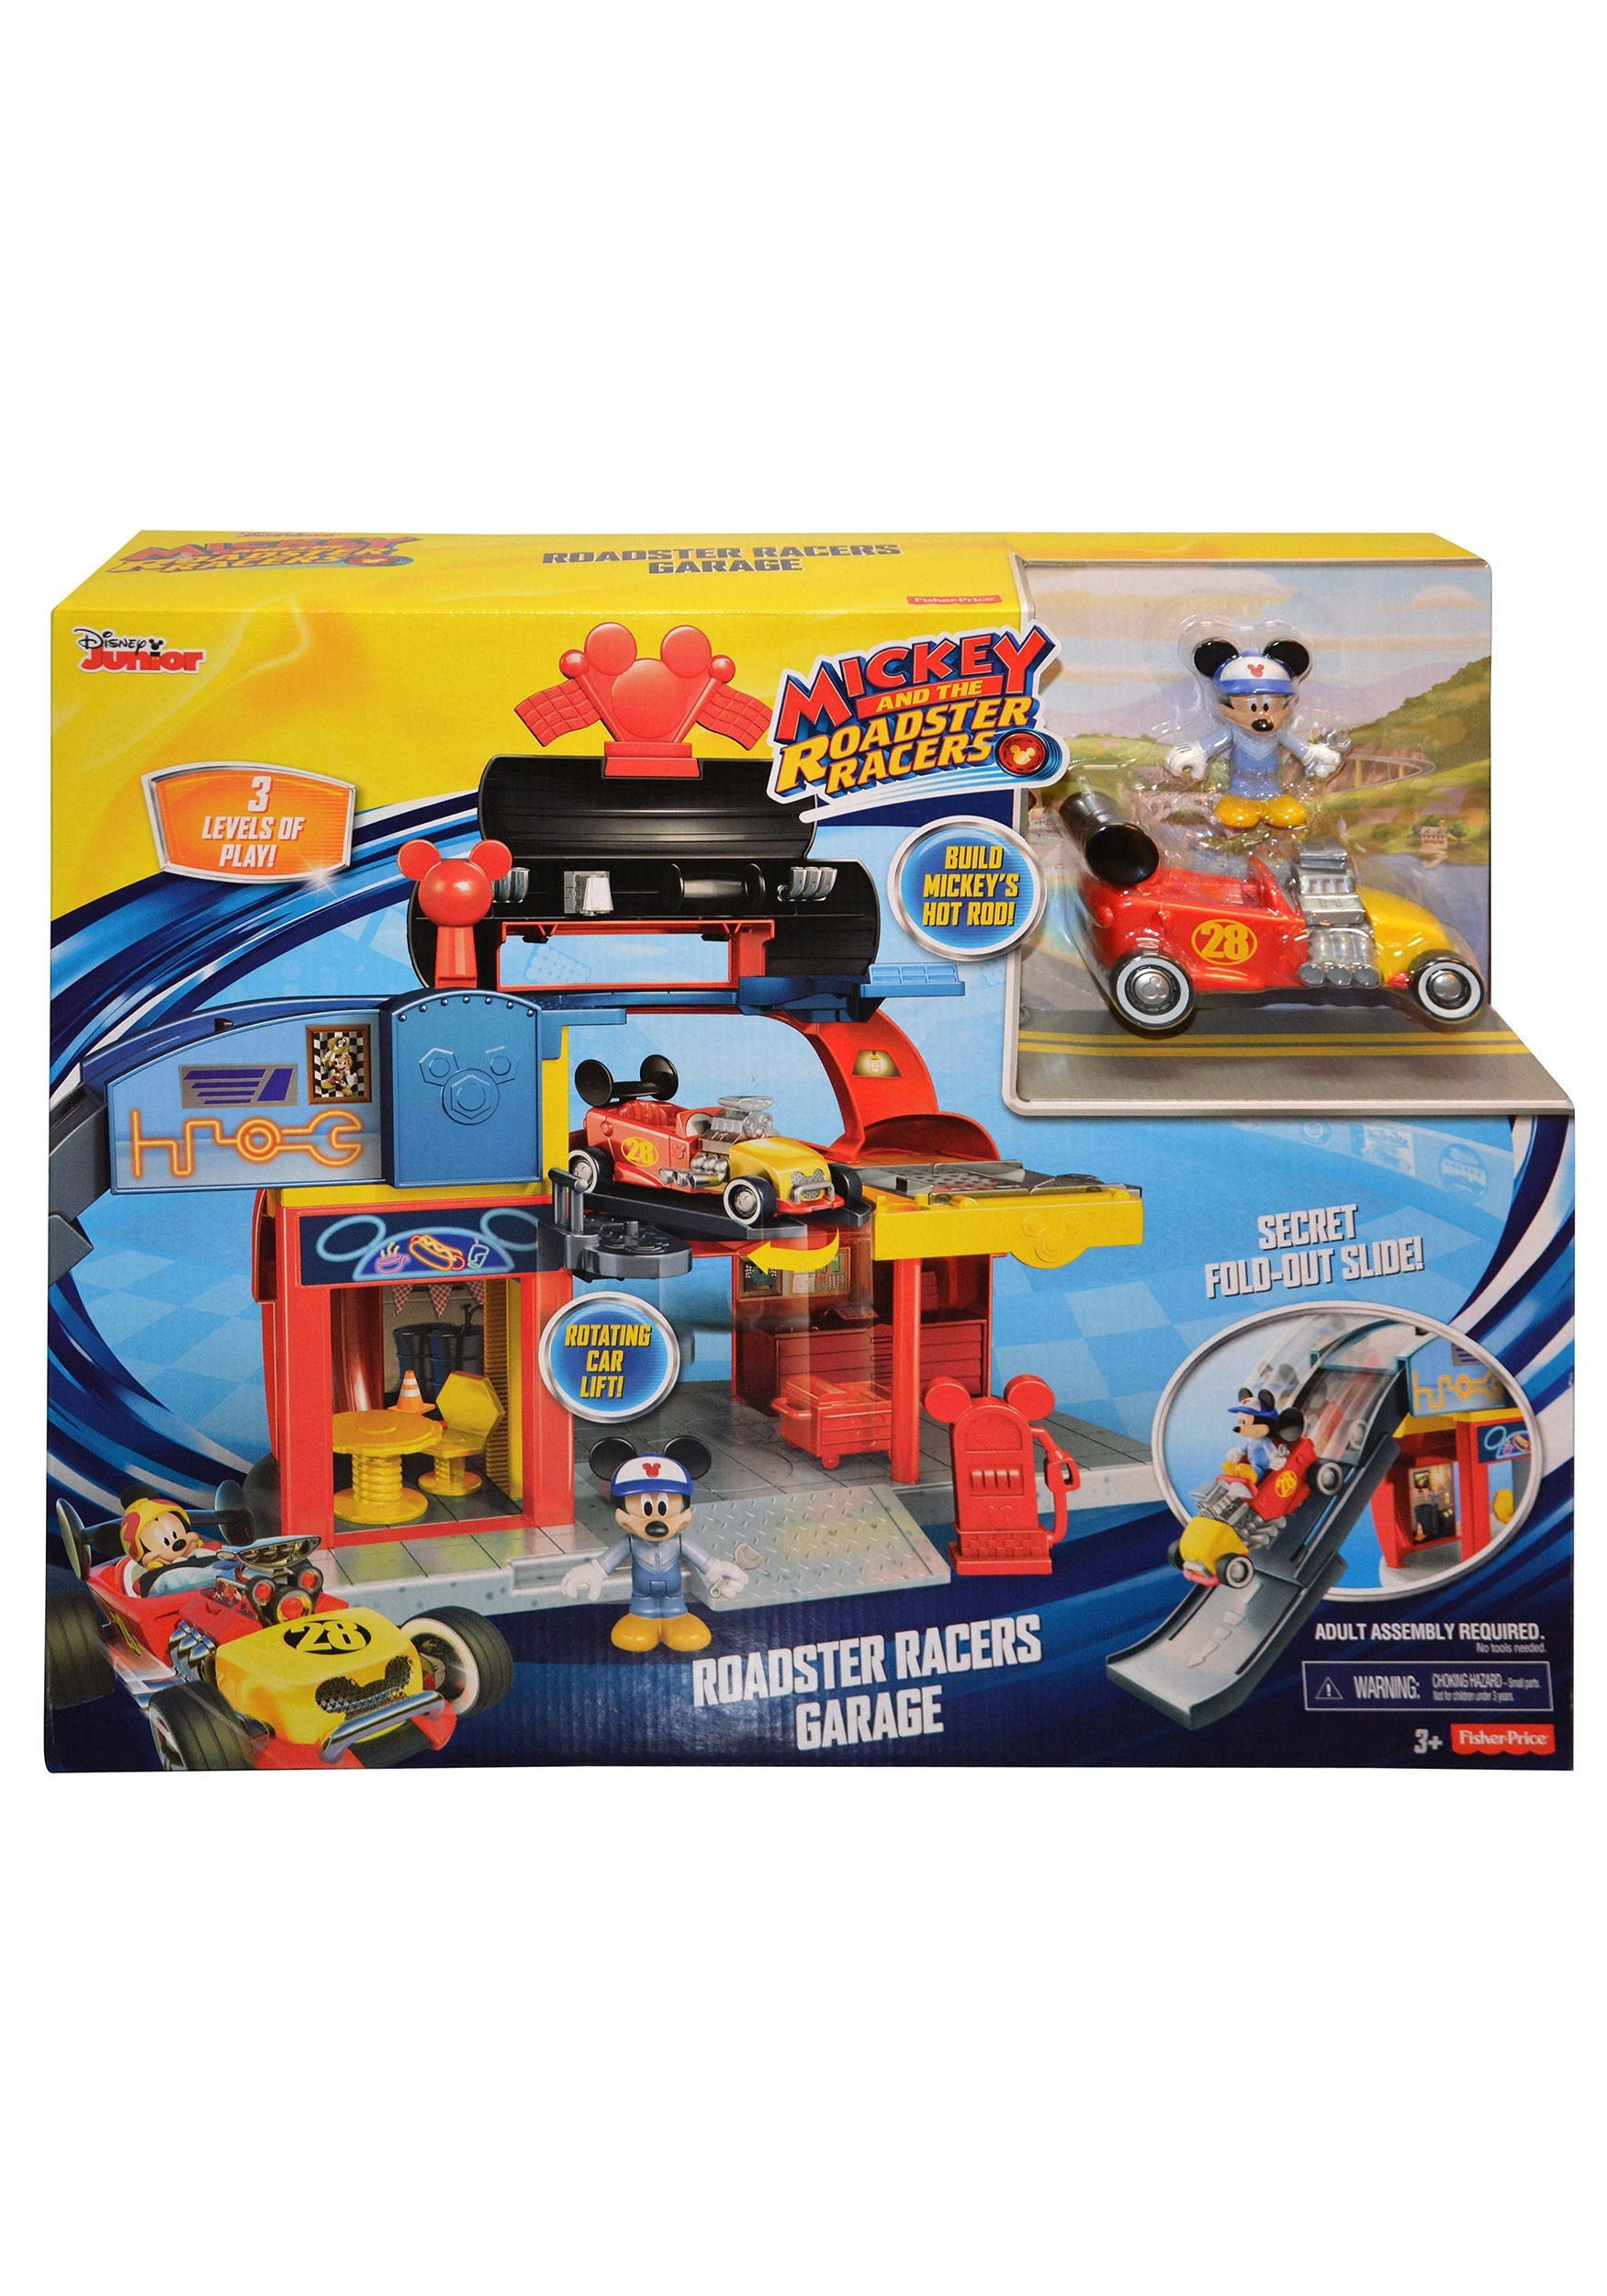 Disney Mickey Mouse Roadster Racers Garage Play Set UPDDTT859993